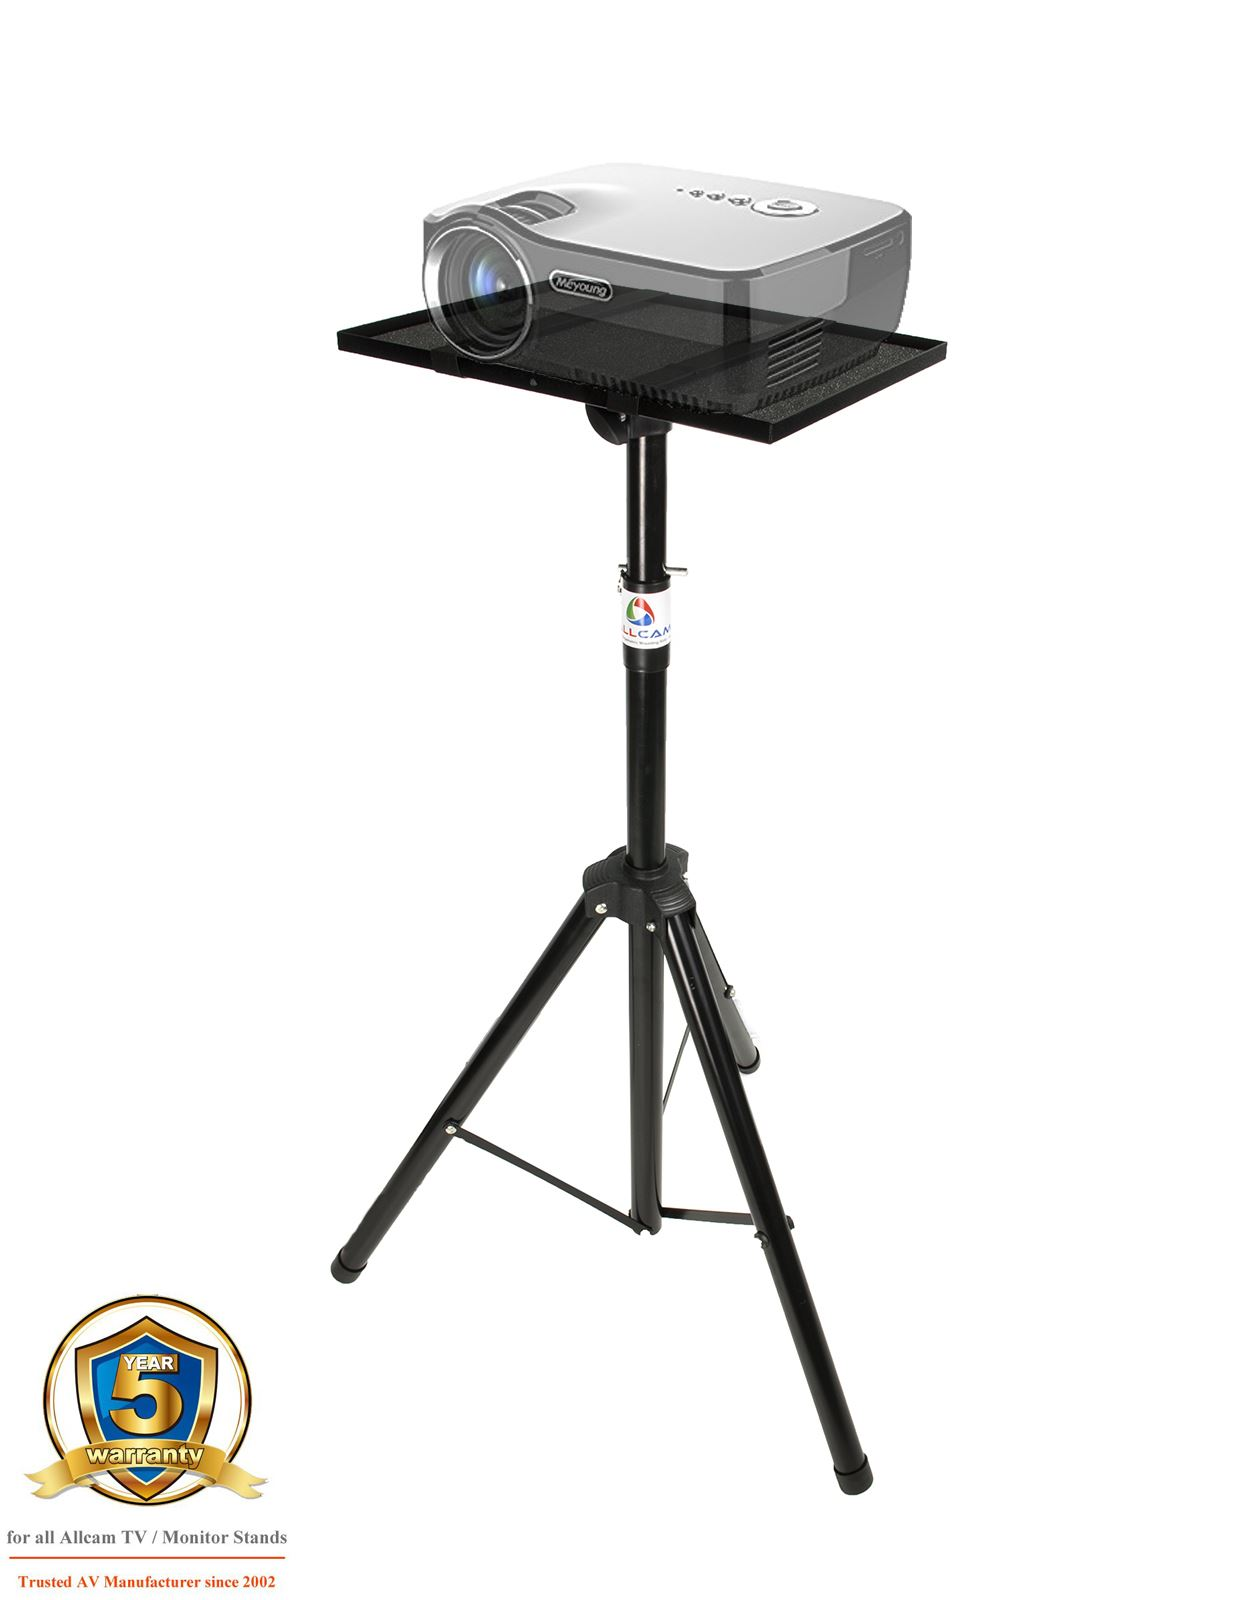 Eurobox Nextgen Portable 43 32 Allcam Portable Projector Stand Tripod Laptop Table